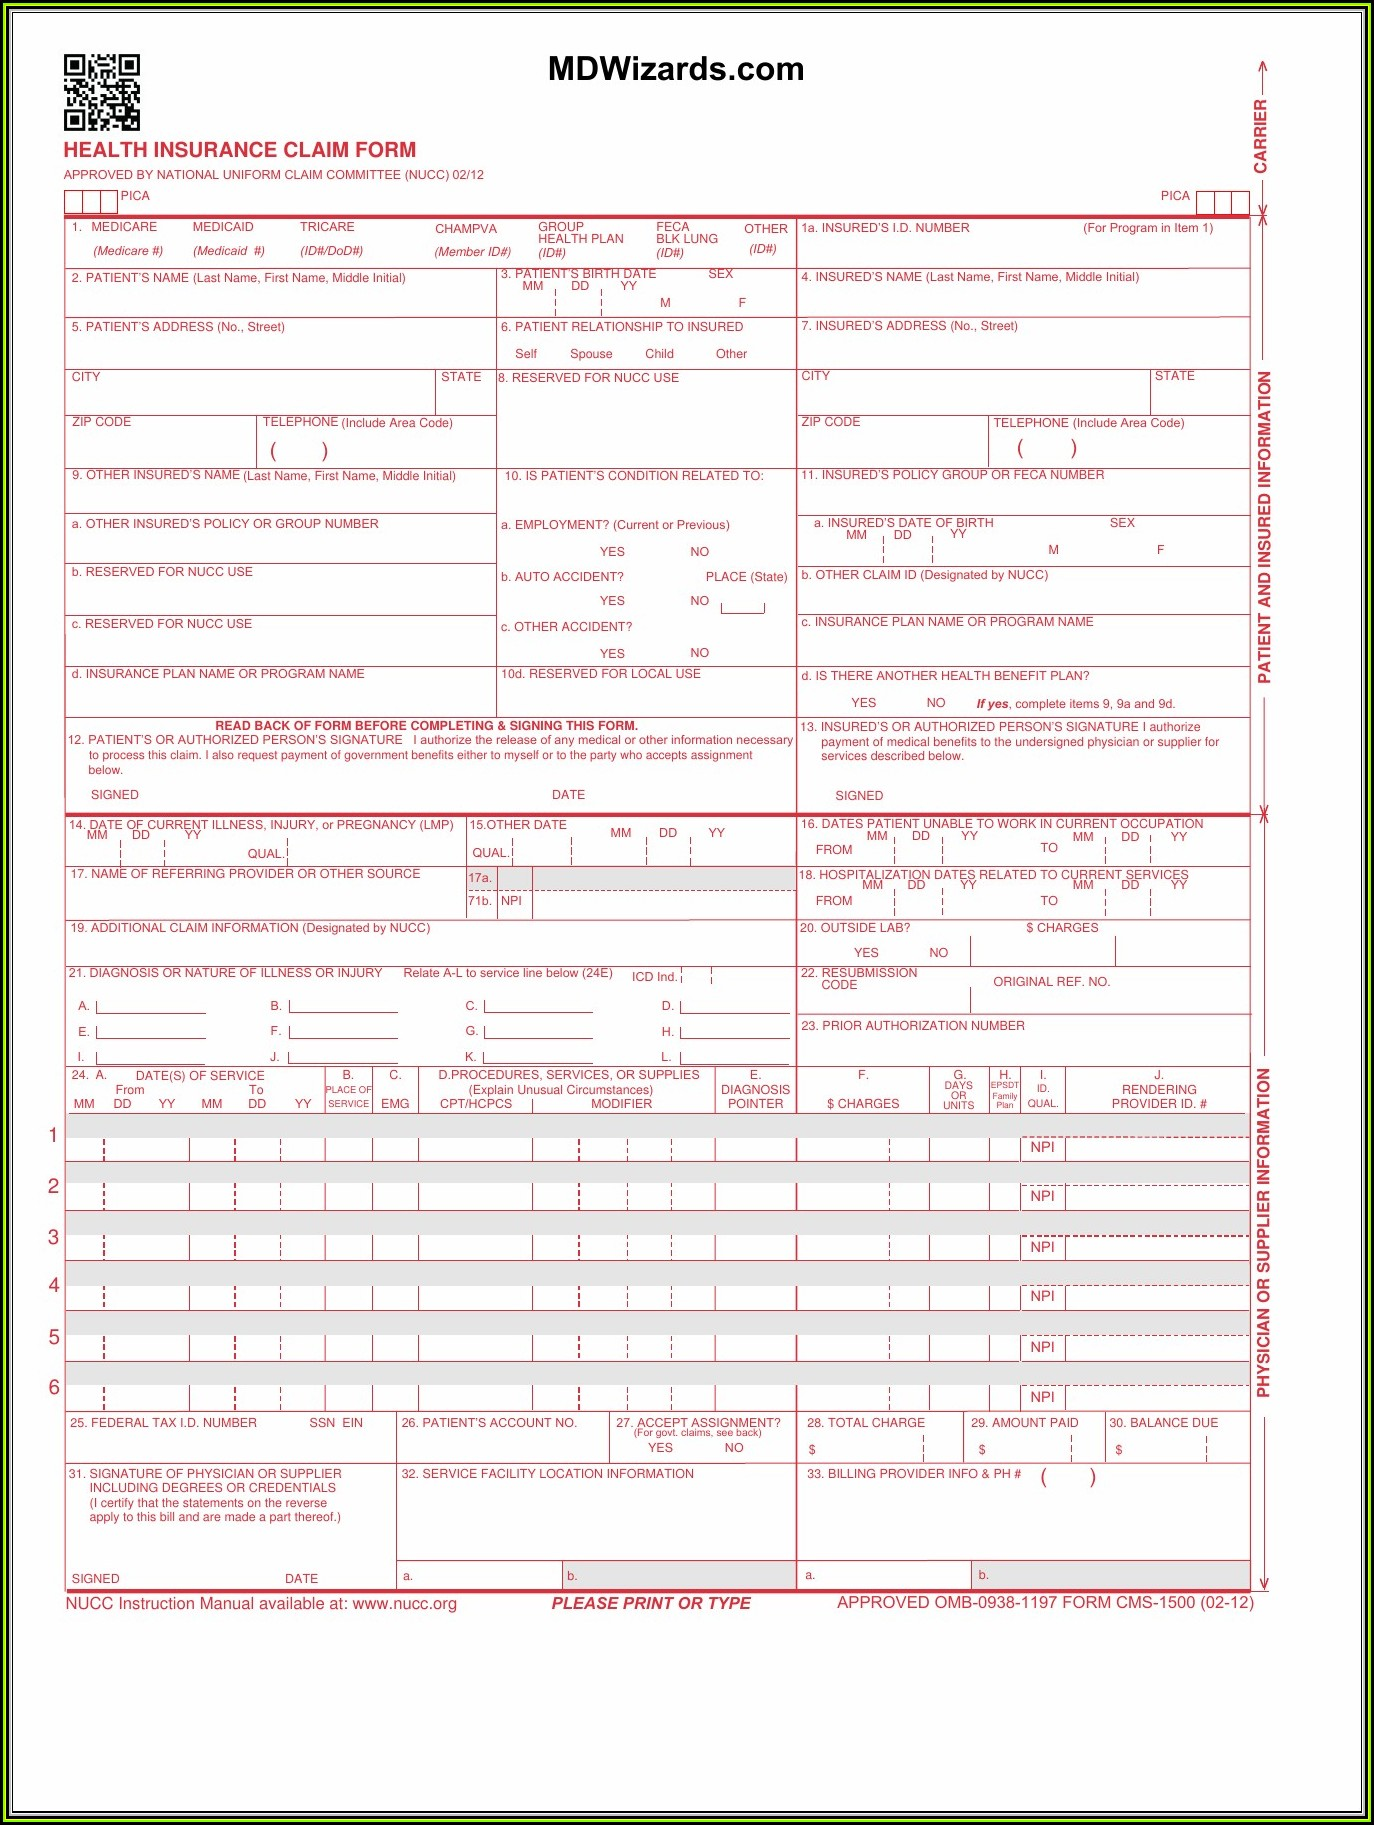 Free 1500 Form Download